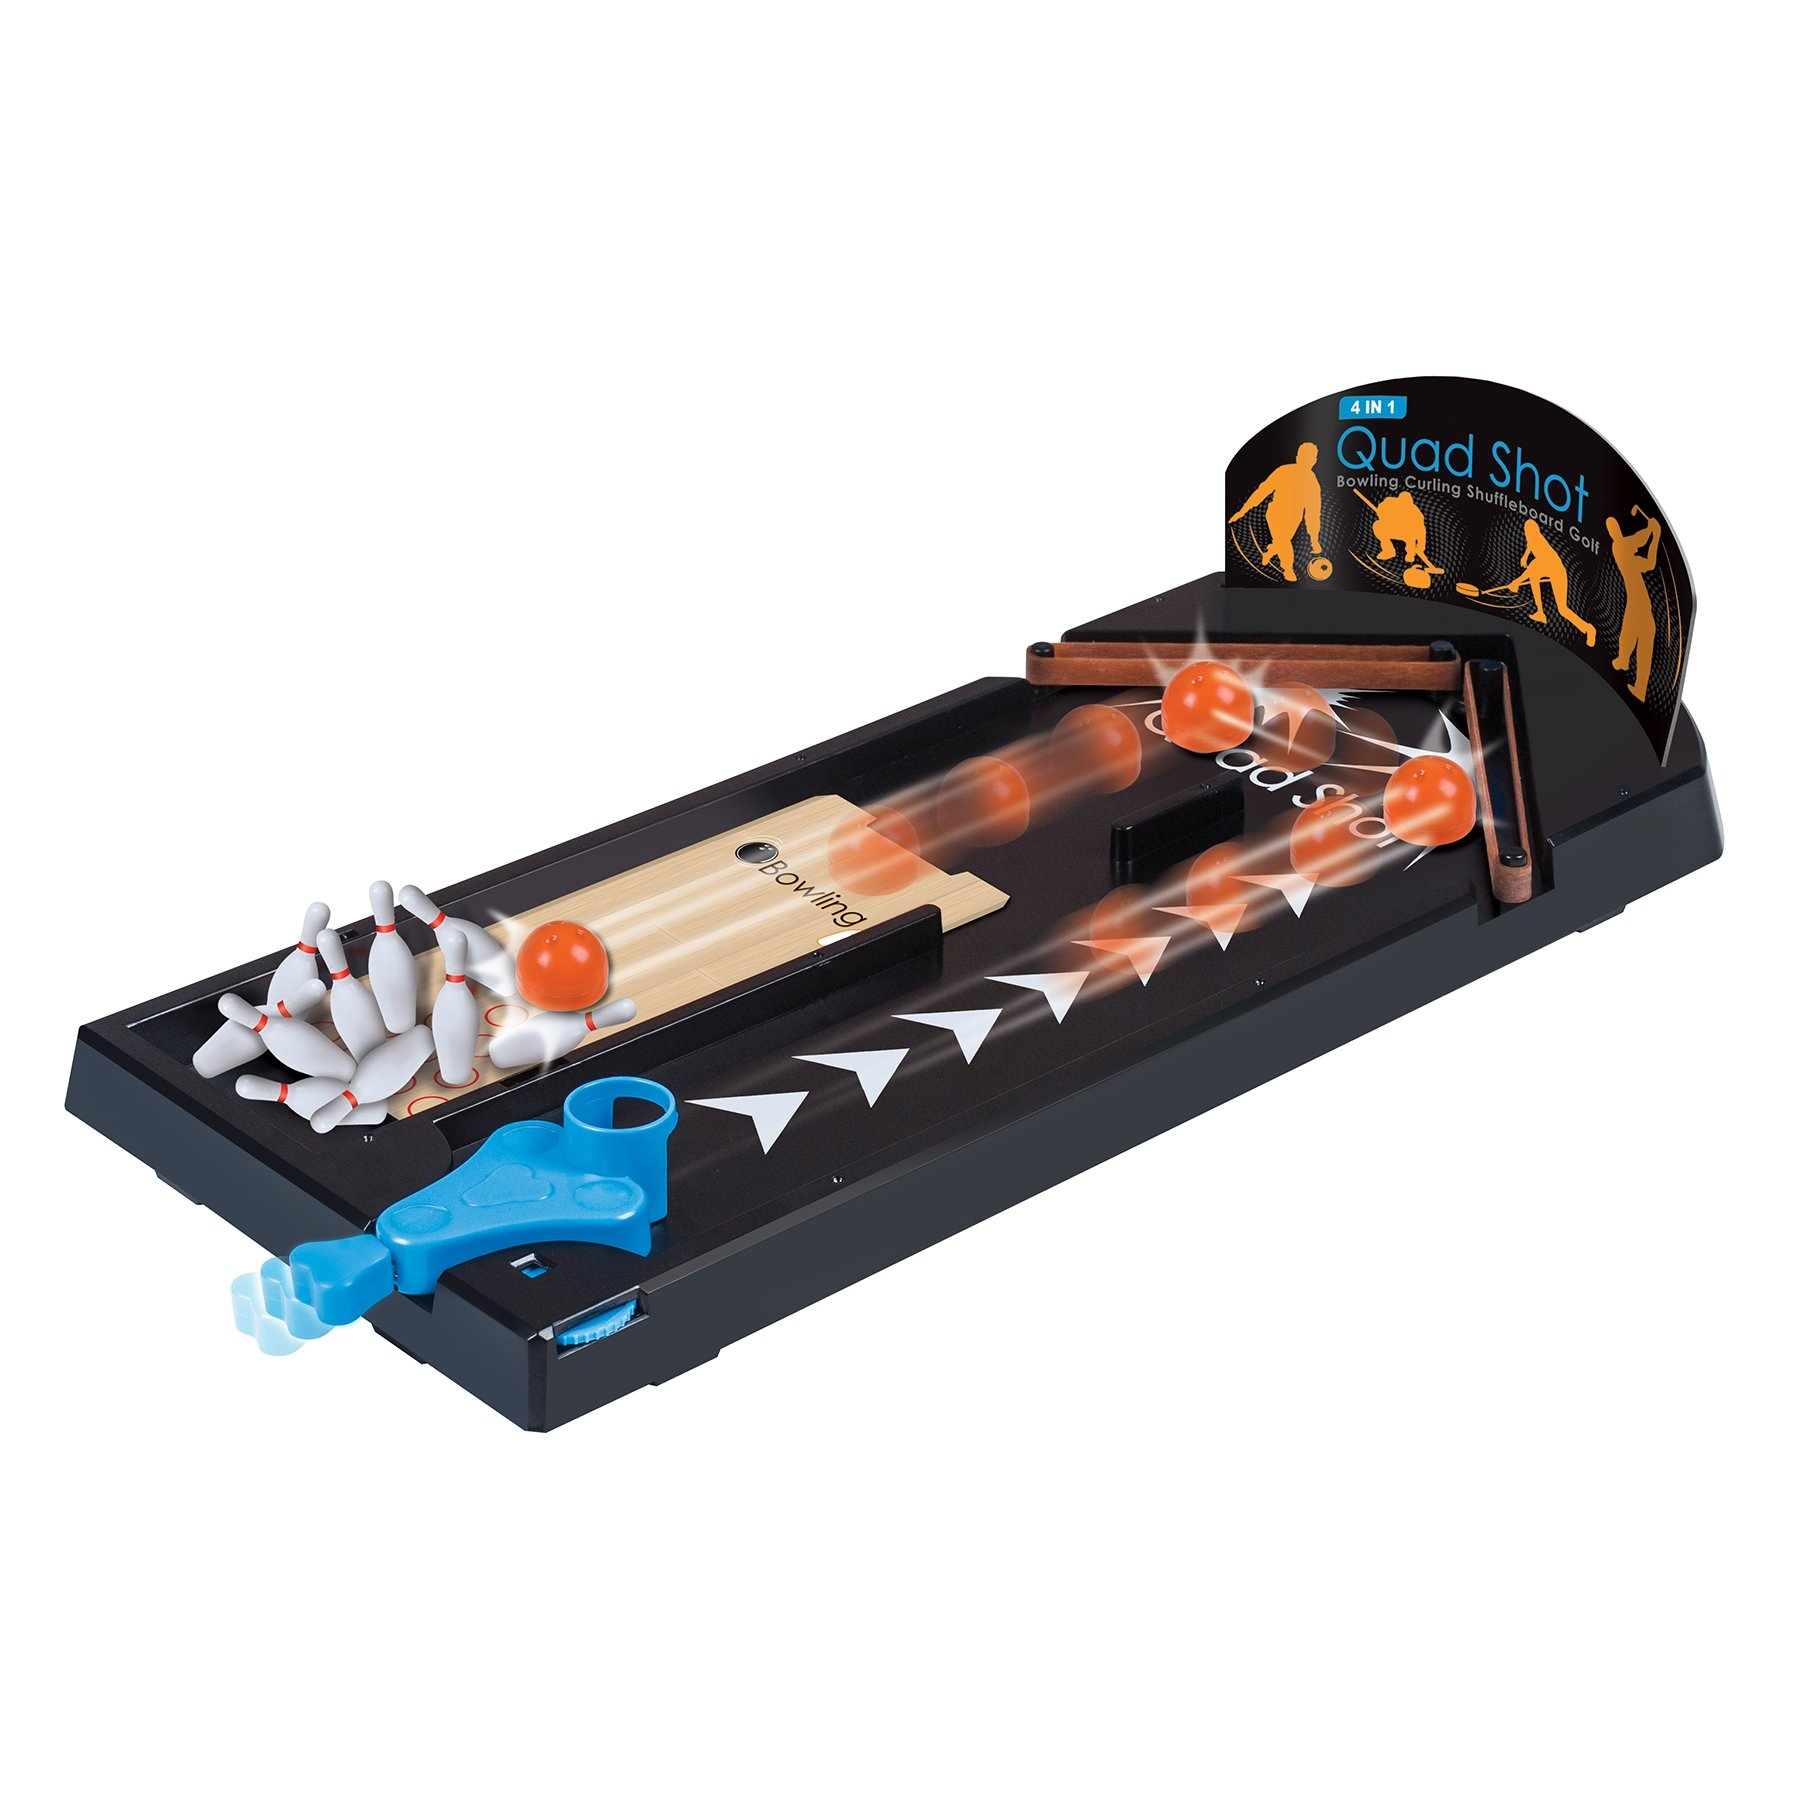 Funtime 4-in-1 Quad Shot Game